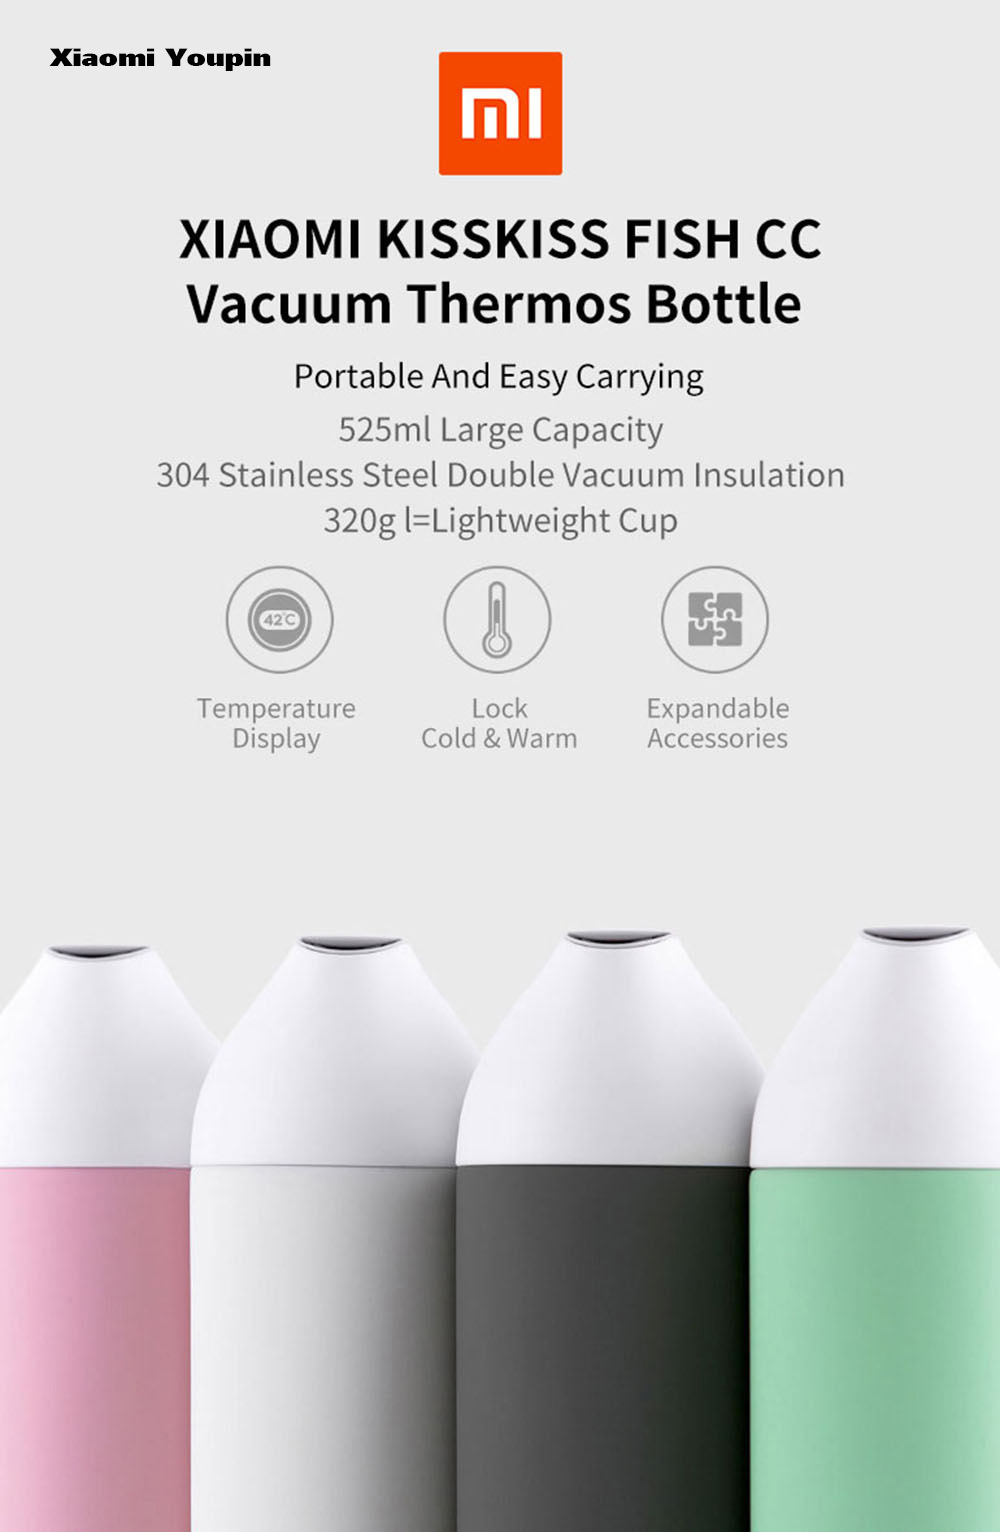 Xiaomi Youpin Kiss Fish CC Smart Water Bottle with Temperature Display- Black